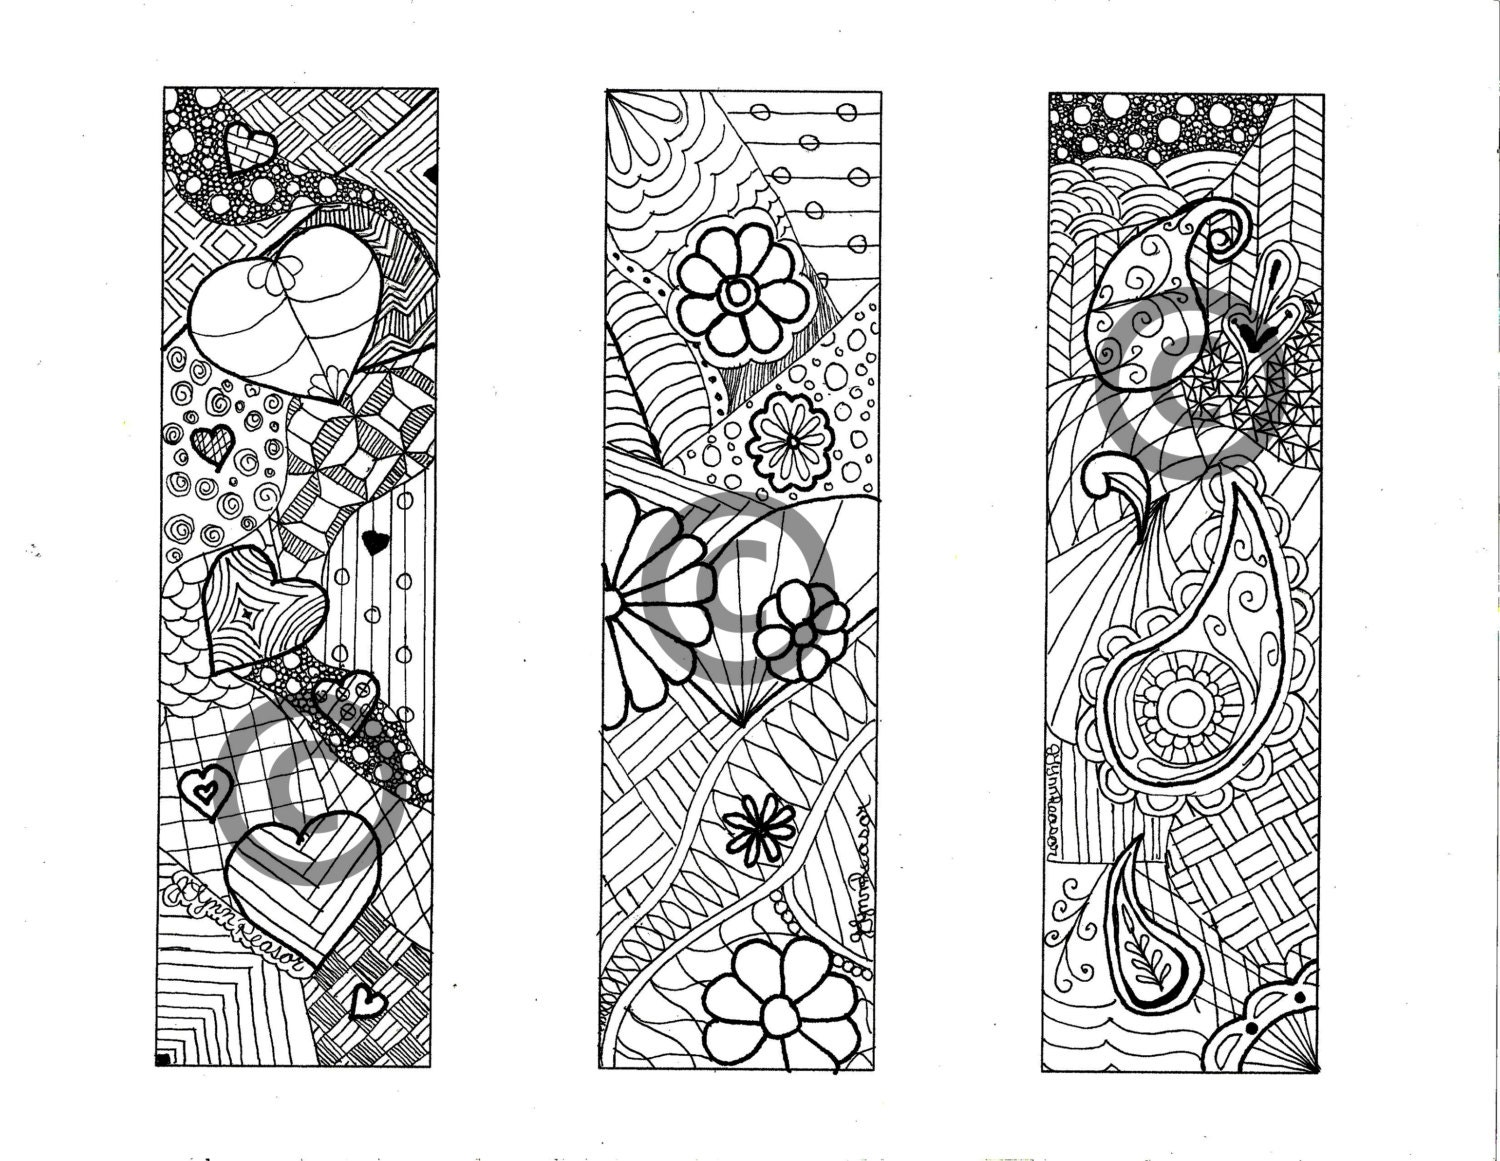 coloring pages of bookmarks - photo#10